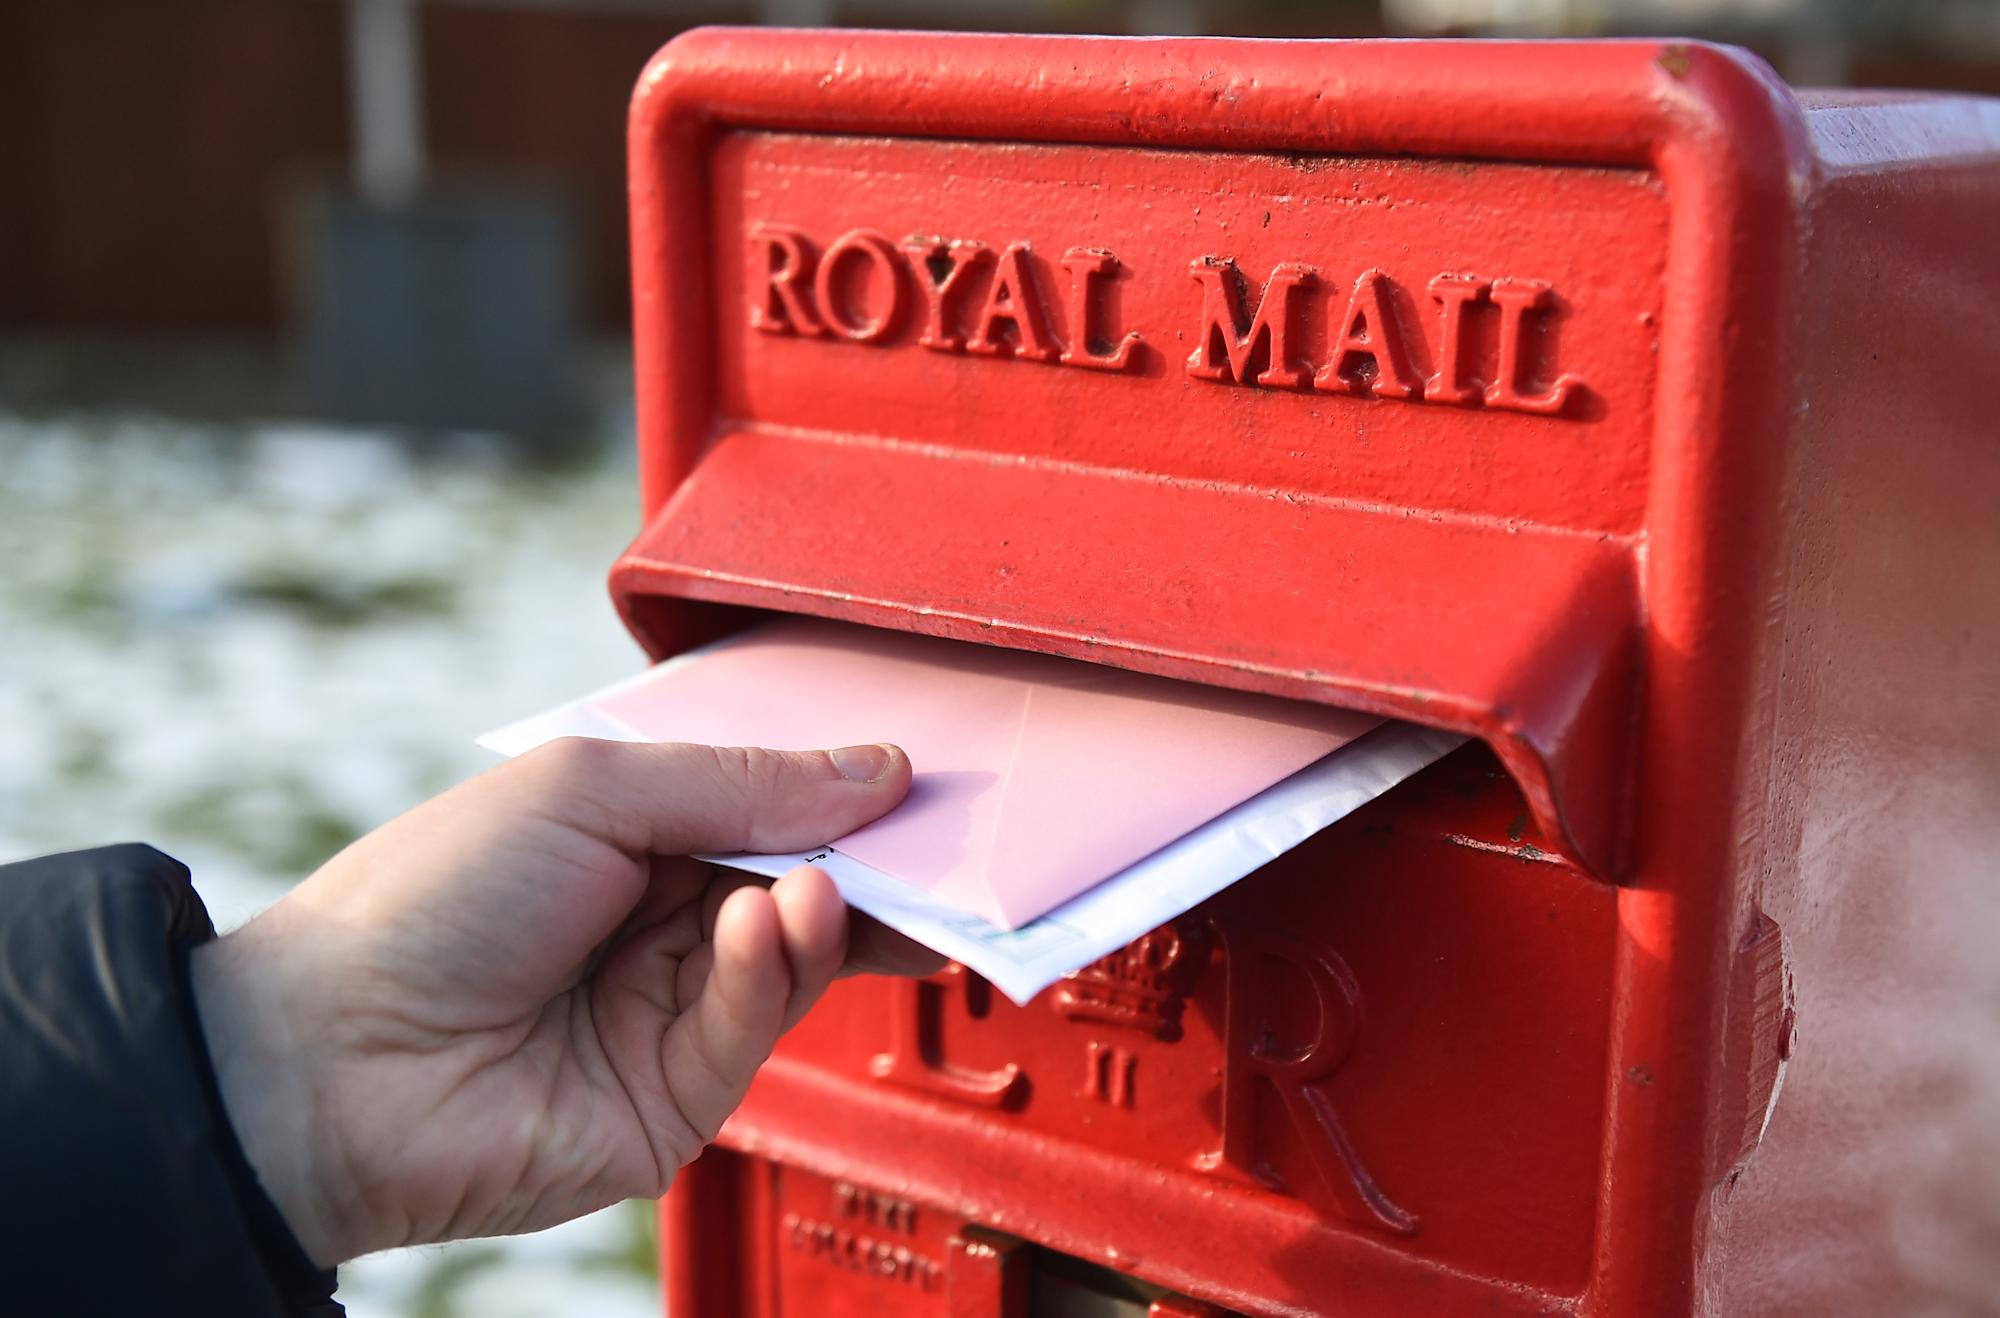 Entire town gets post 13 years late after it's found at dead Royal Mail worker's home